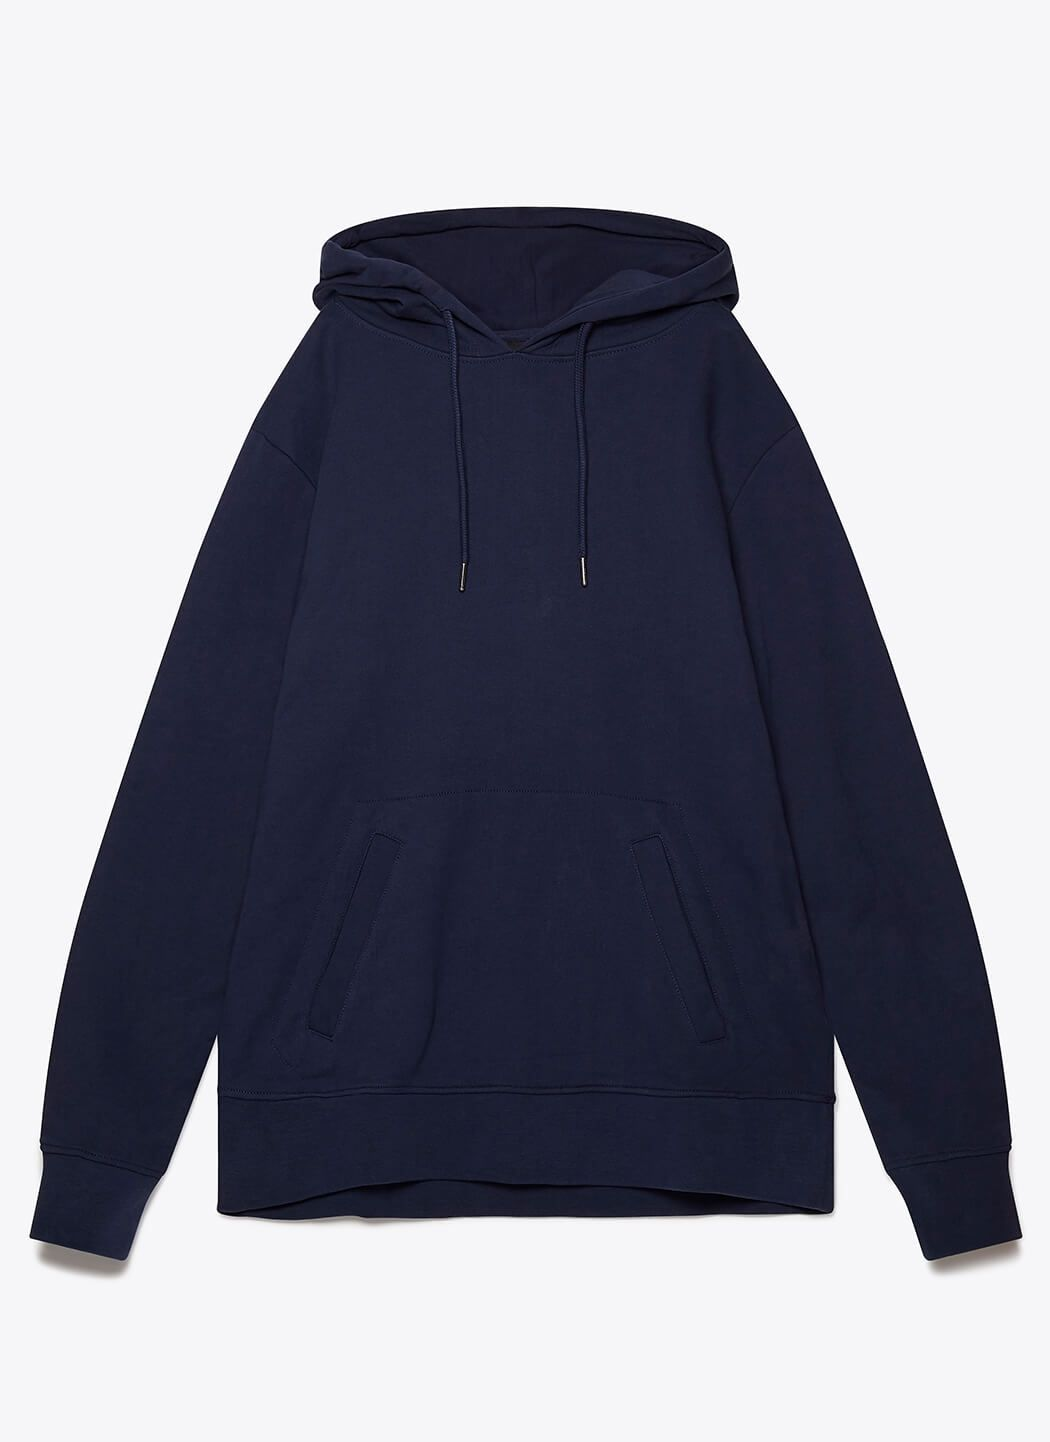 penfield medium  Penfield.com | Mens Westridge Navy Hoody -Medium | wish list 2018 ...